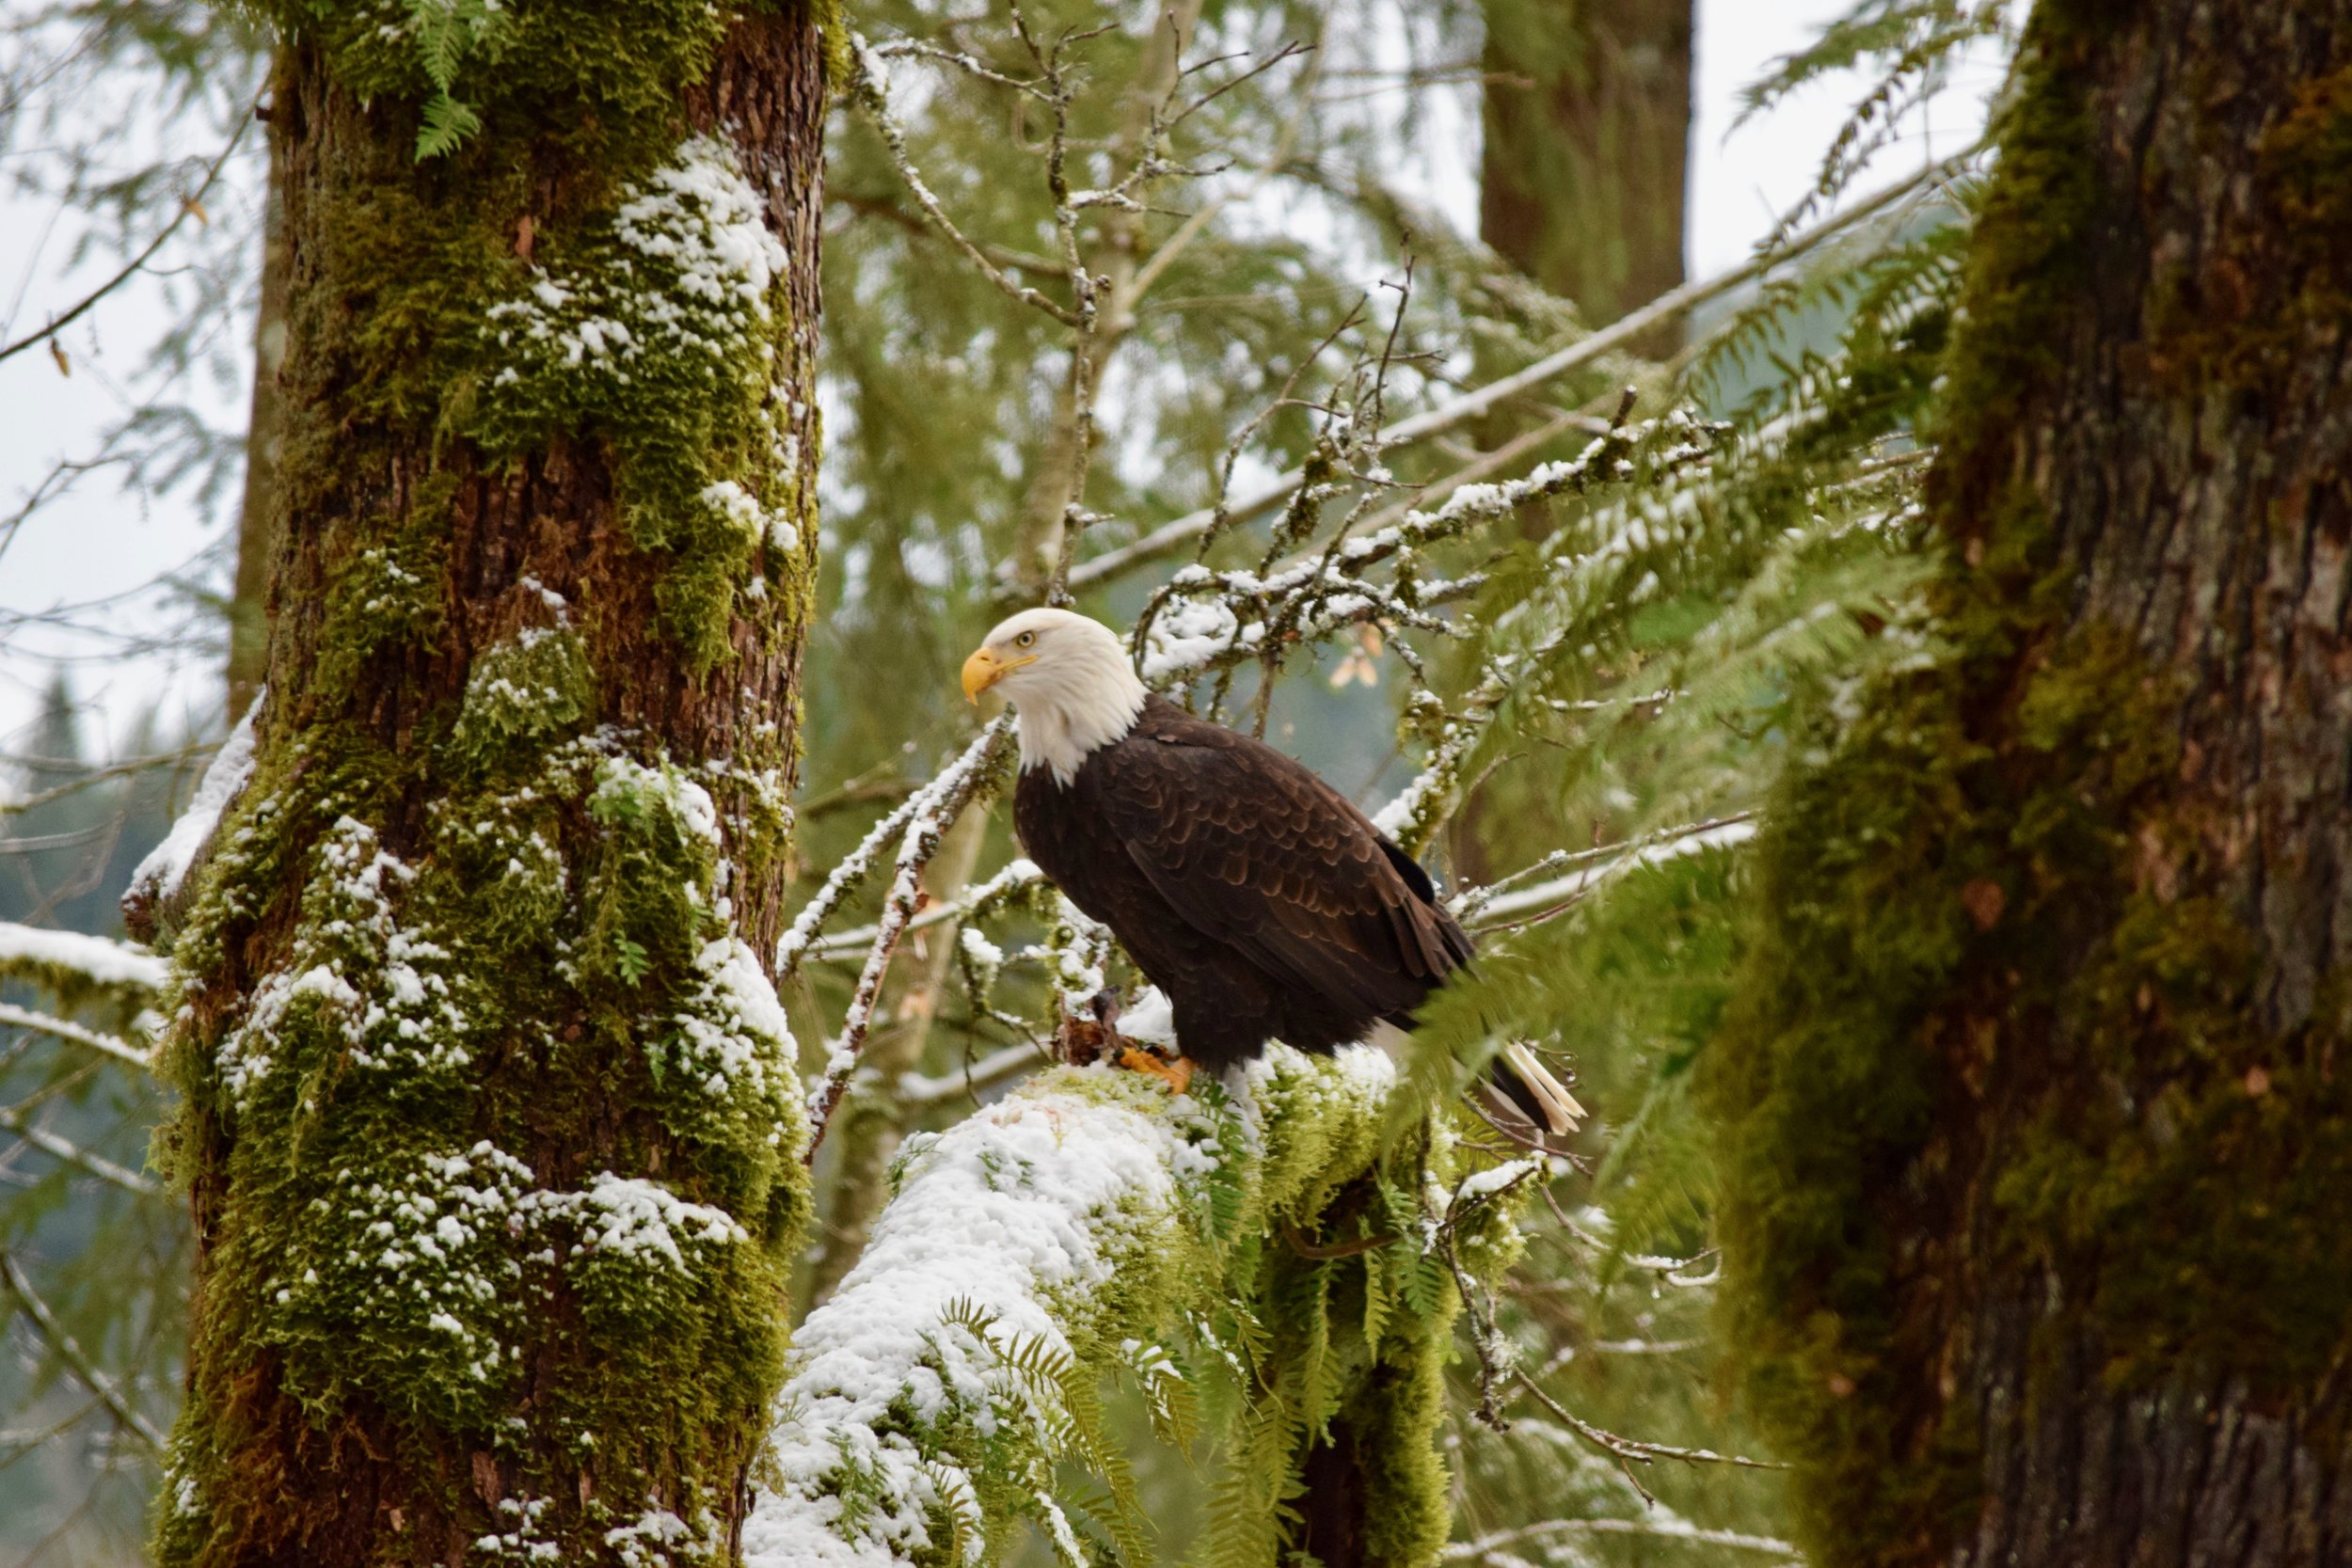 Eagle in the tree